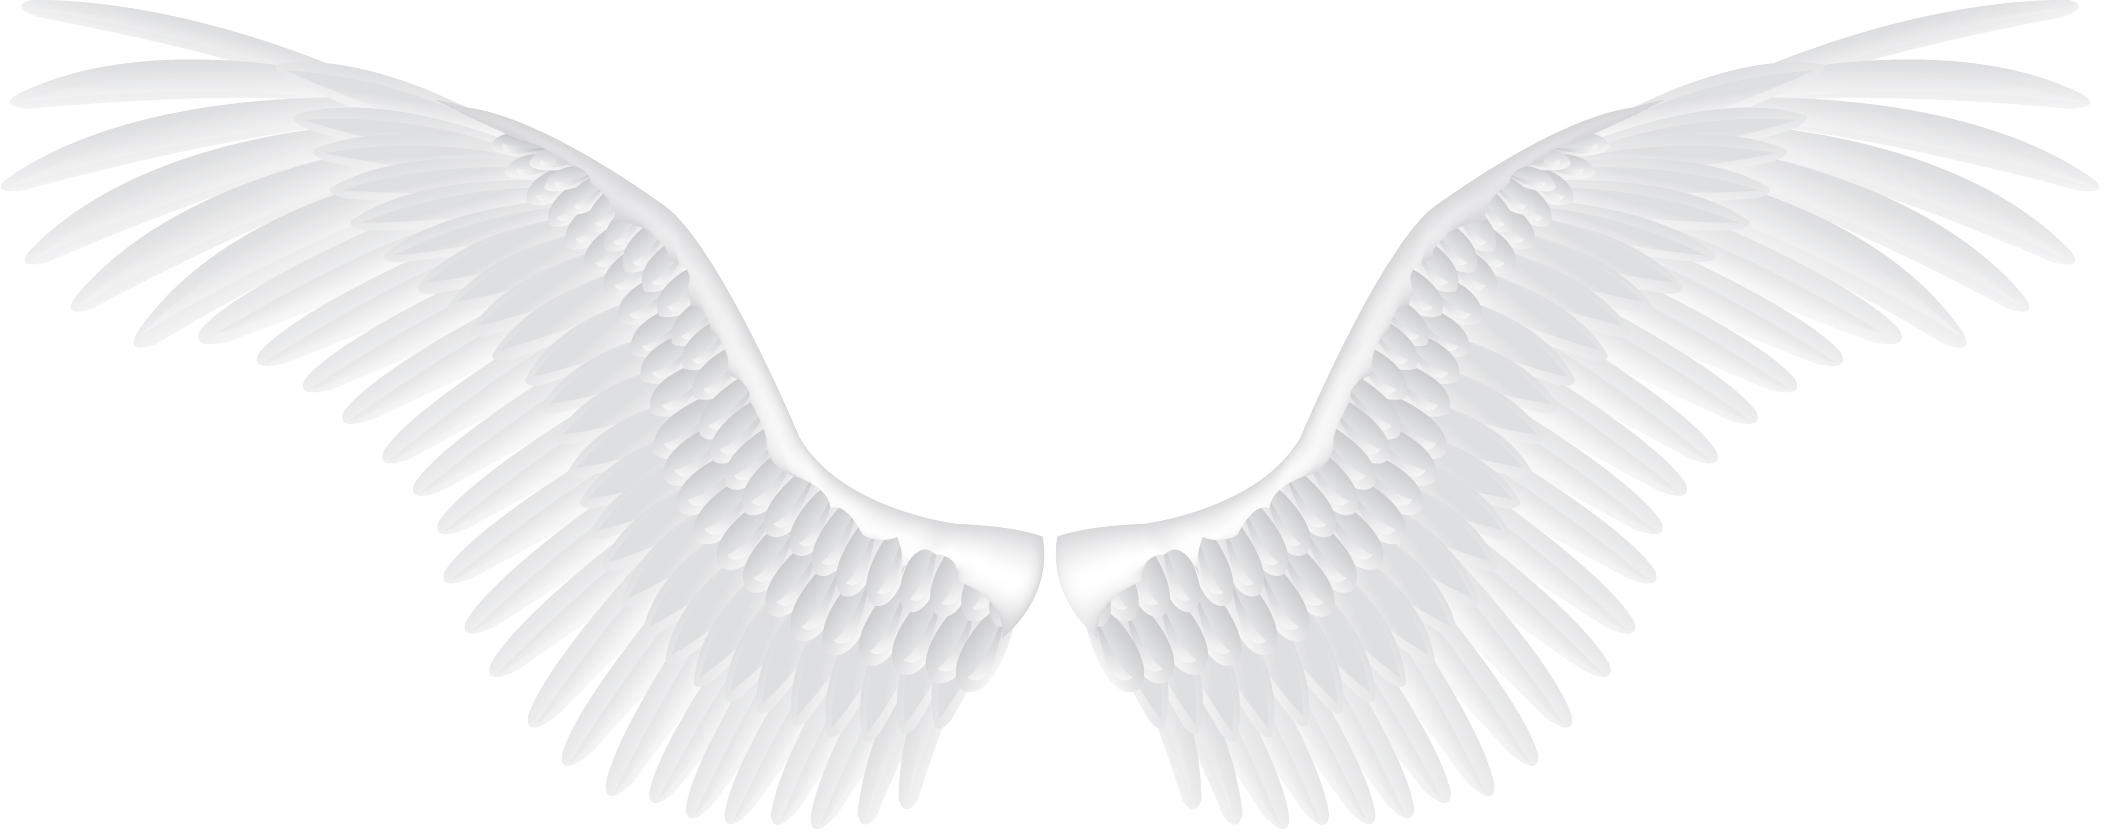 Dark angels wallpaper png. Wings images free download